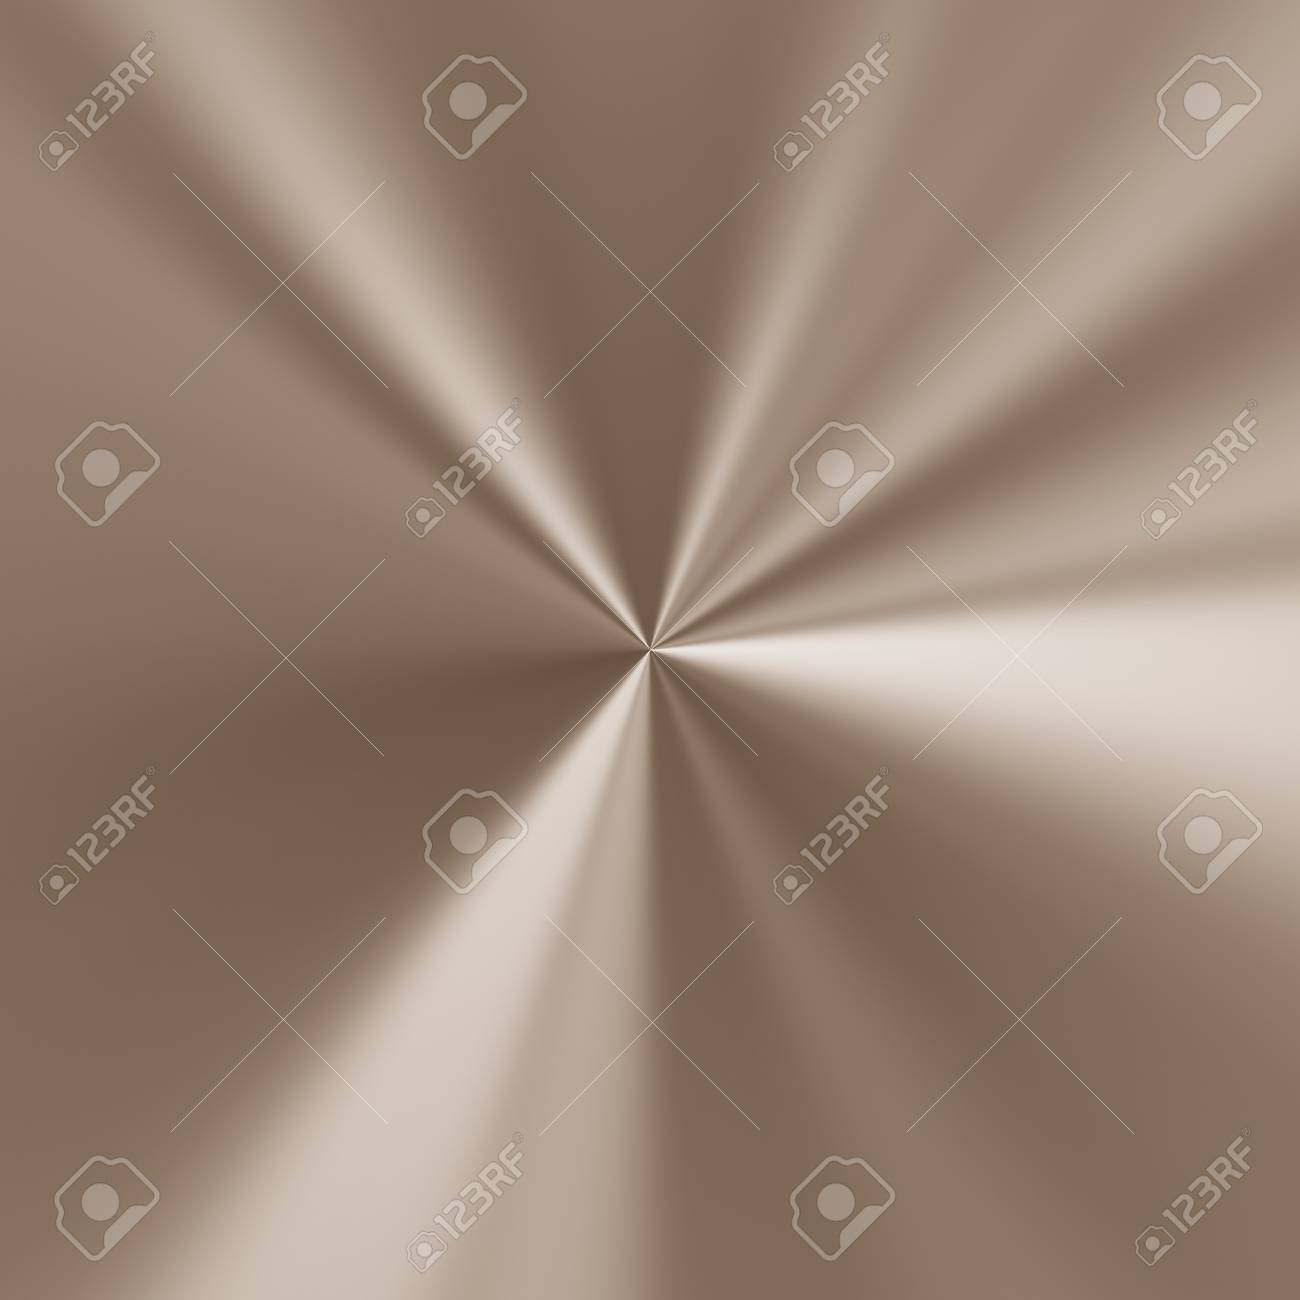 impressive metal surface tinted by brown color Stock Photo - 13642951